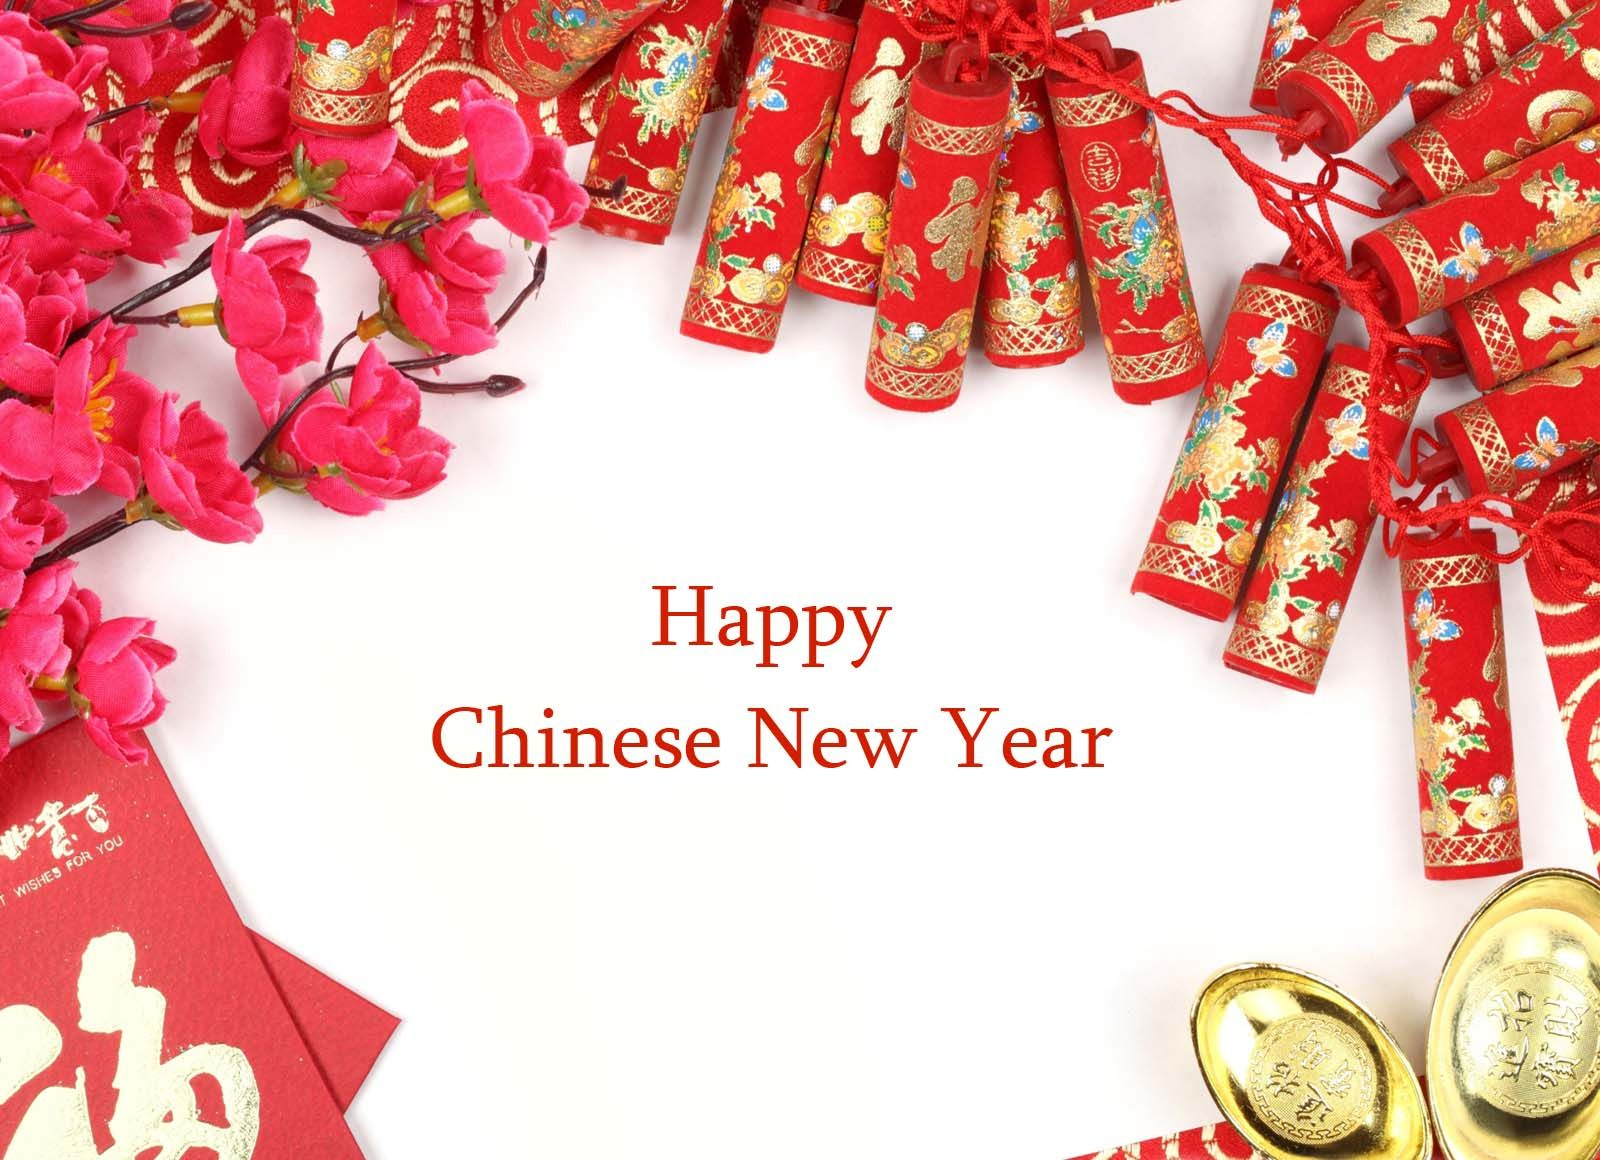 The 25 best chinese new year wallpaper ideas on pinterest the 25 best chinese new year wallpaper ideas on pinterest chinese new year 2016 chinese new year 2014 and 2015 chinese new year alramifo Gallery